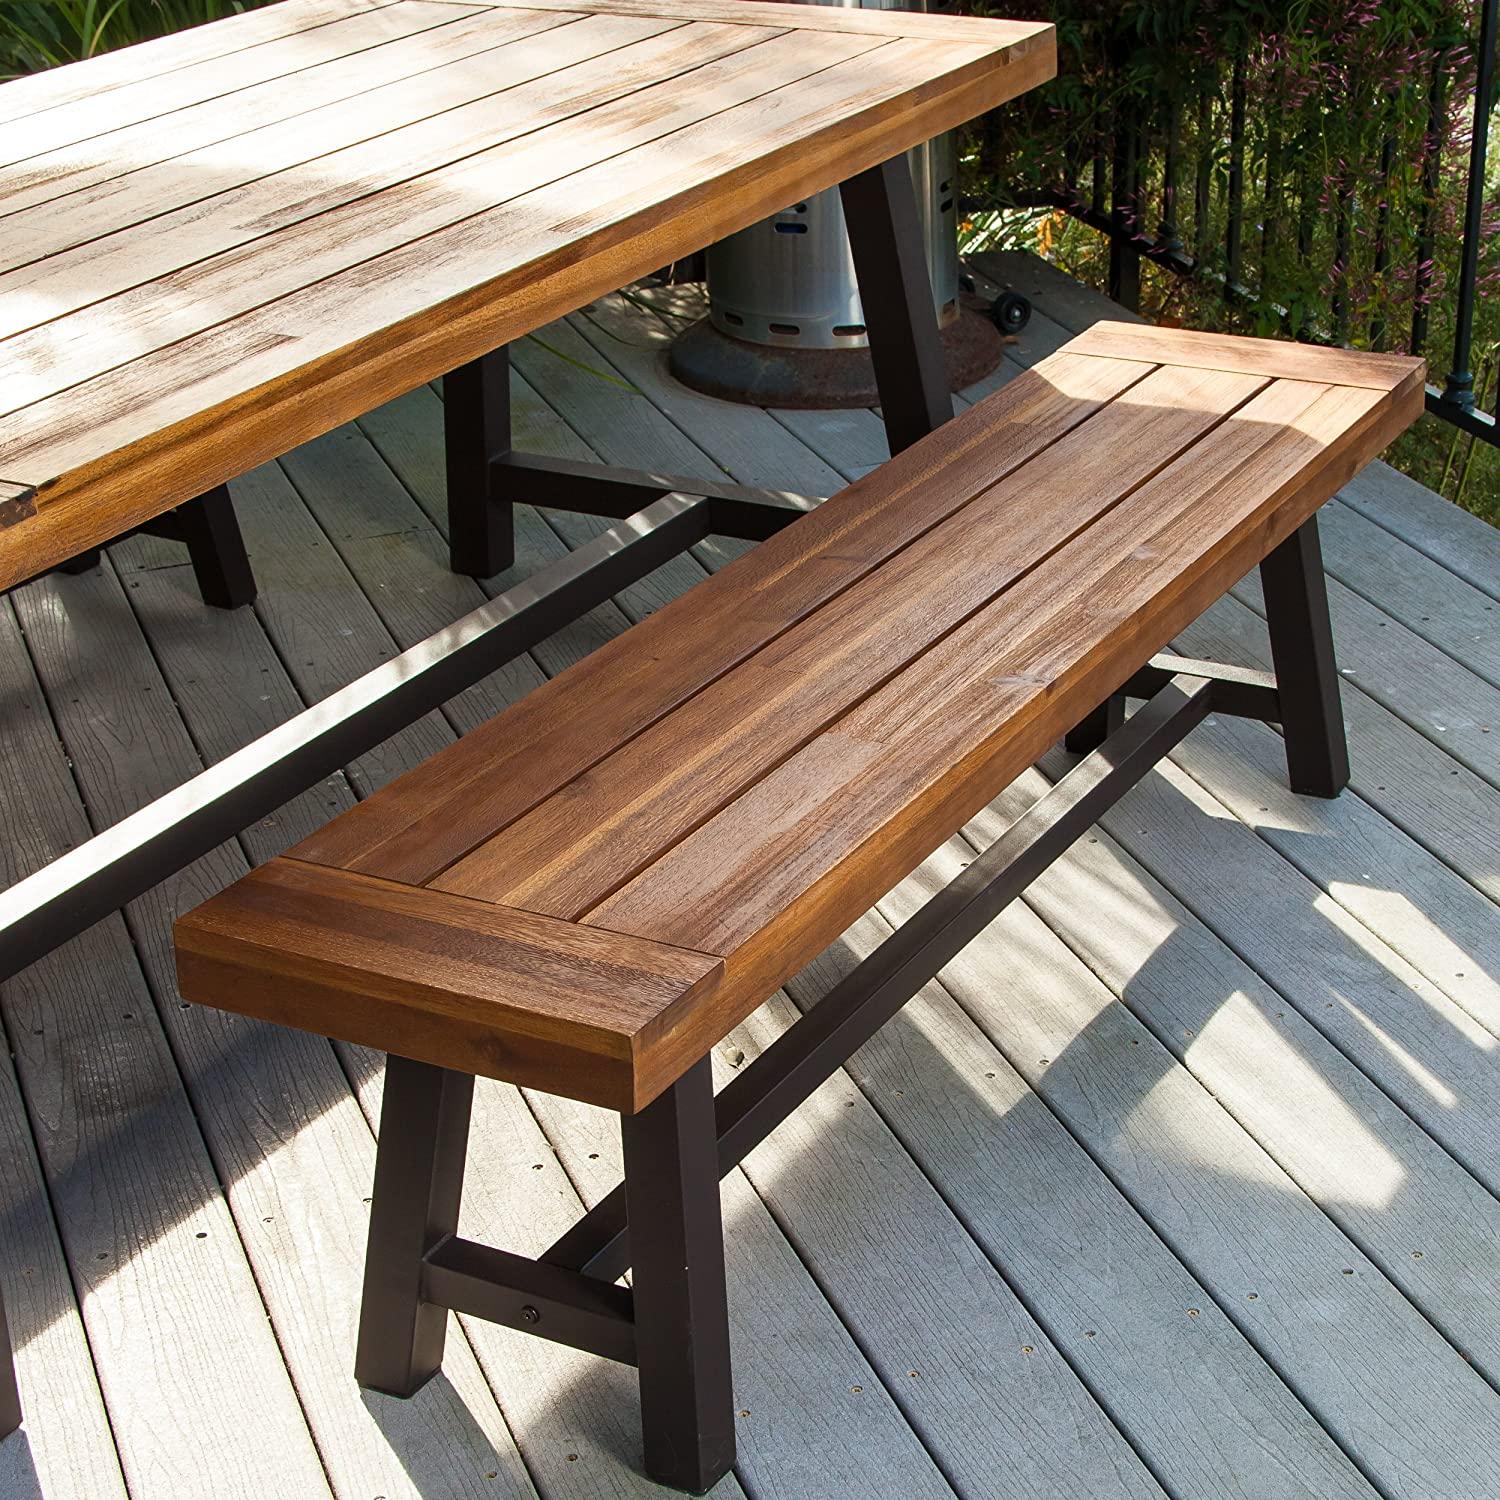 Amazoncom Christopher Knight Home Bowman Wood Outdoor - How to stain a picnic table